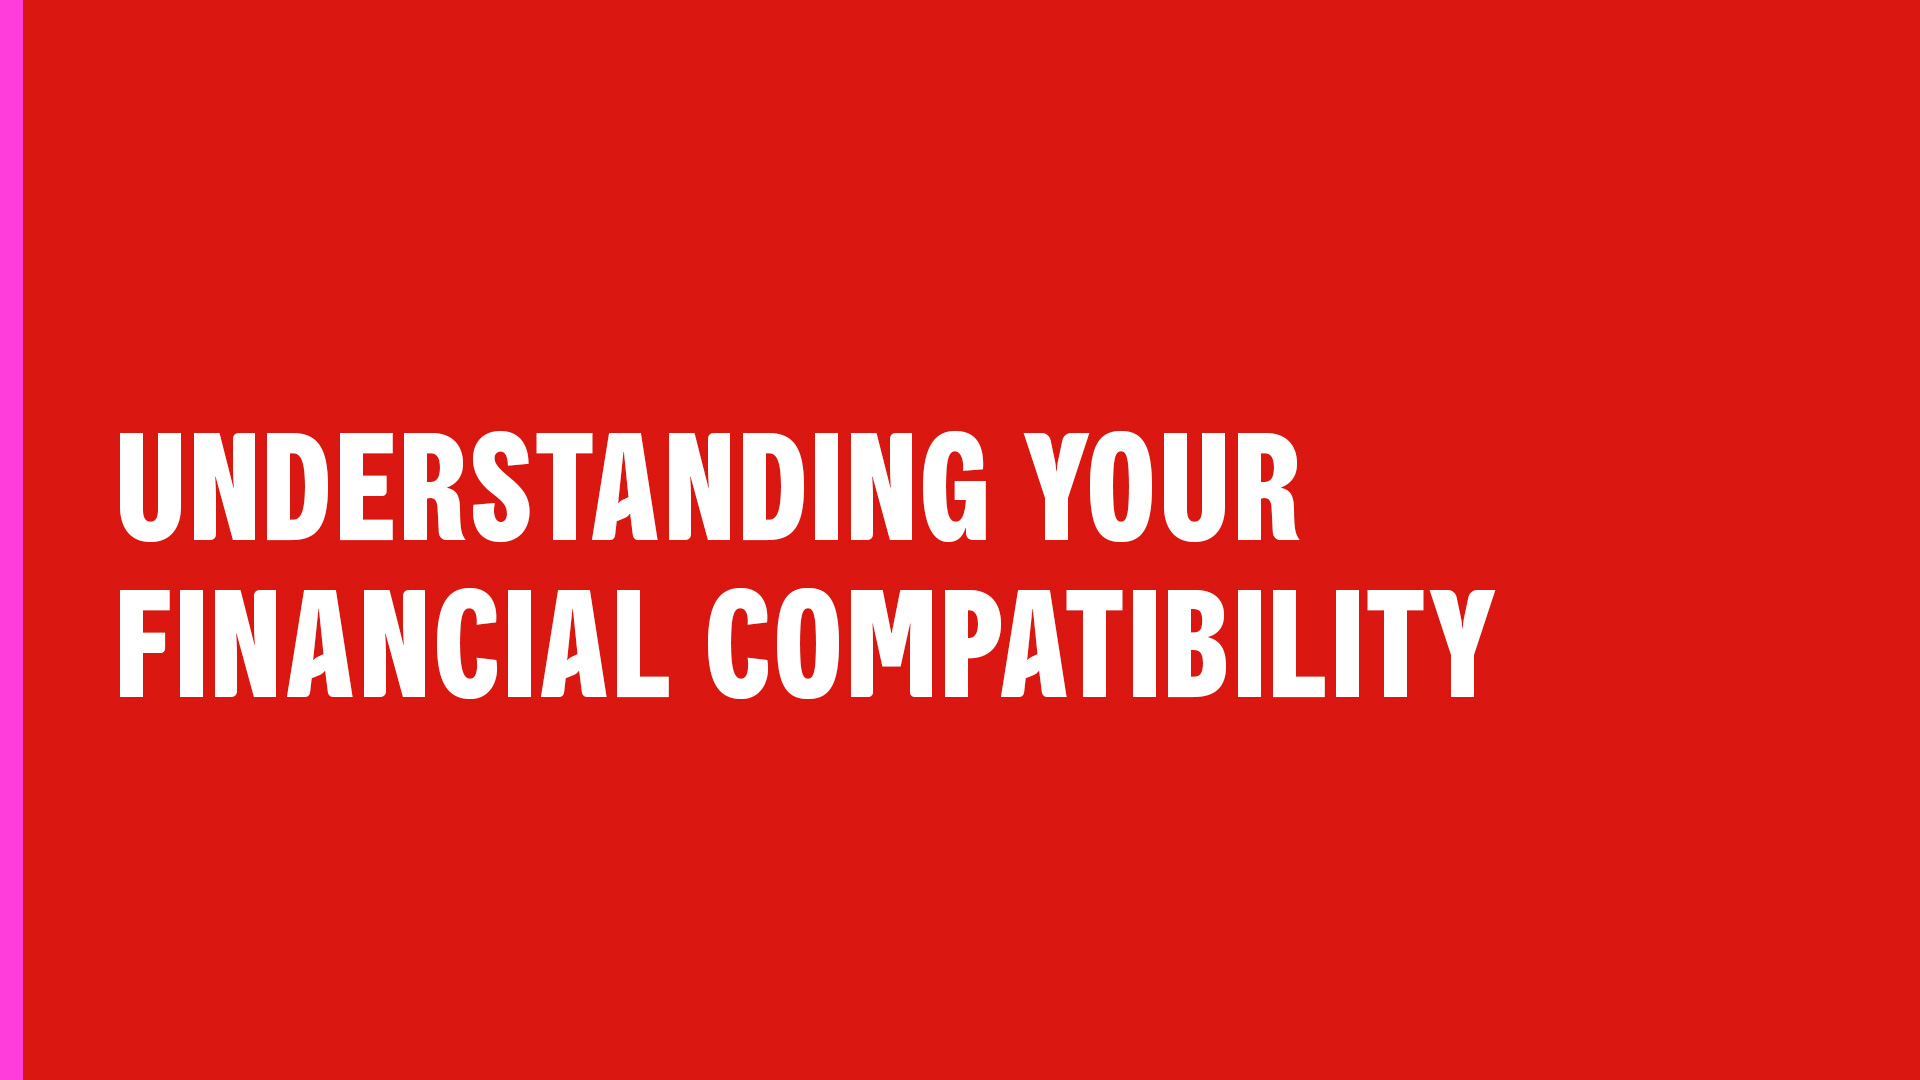 Understanding your financial compatibility.